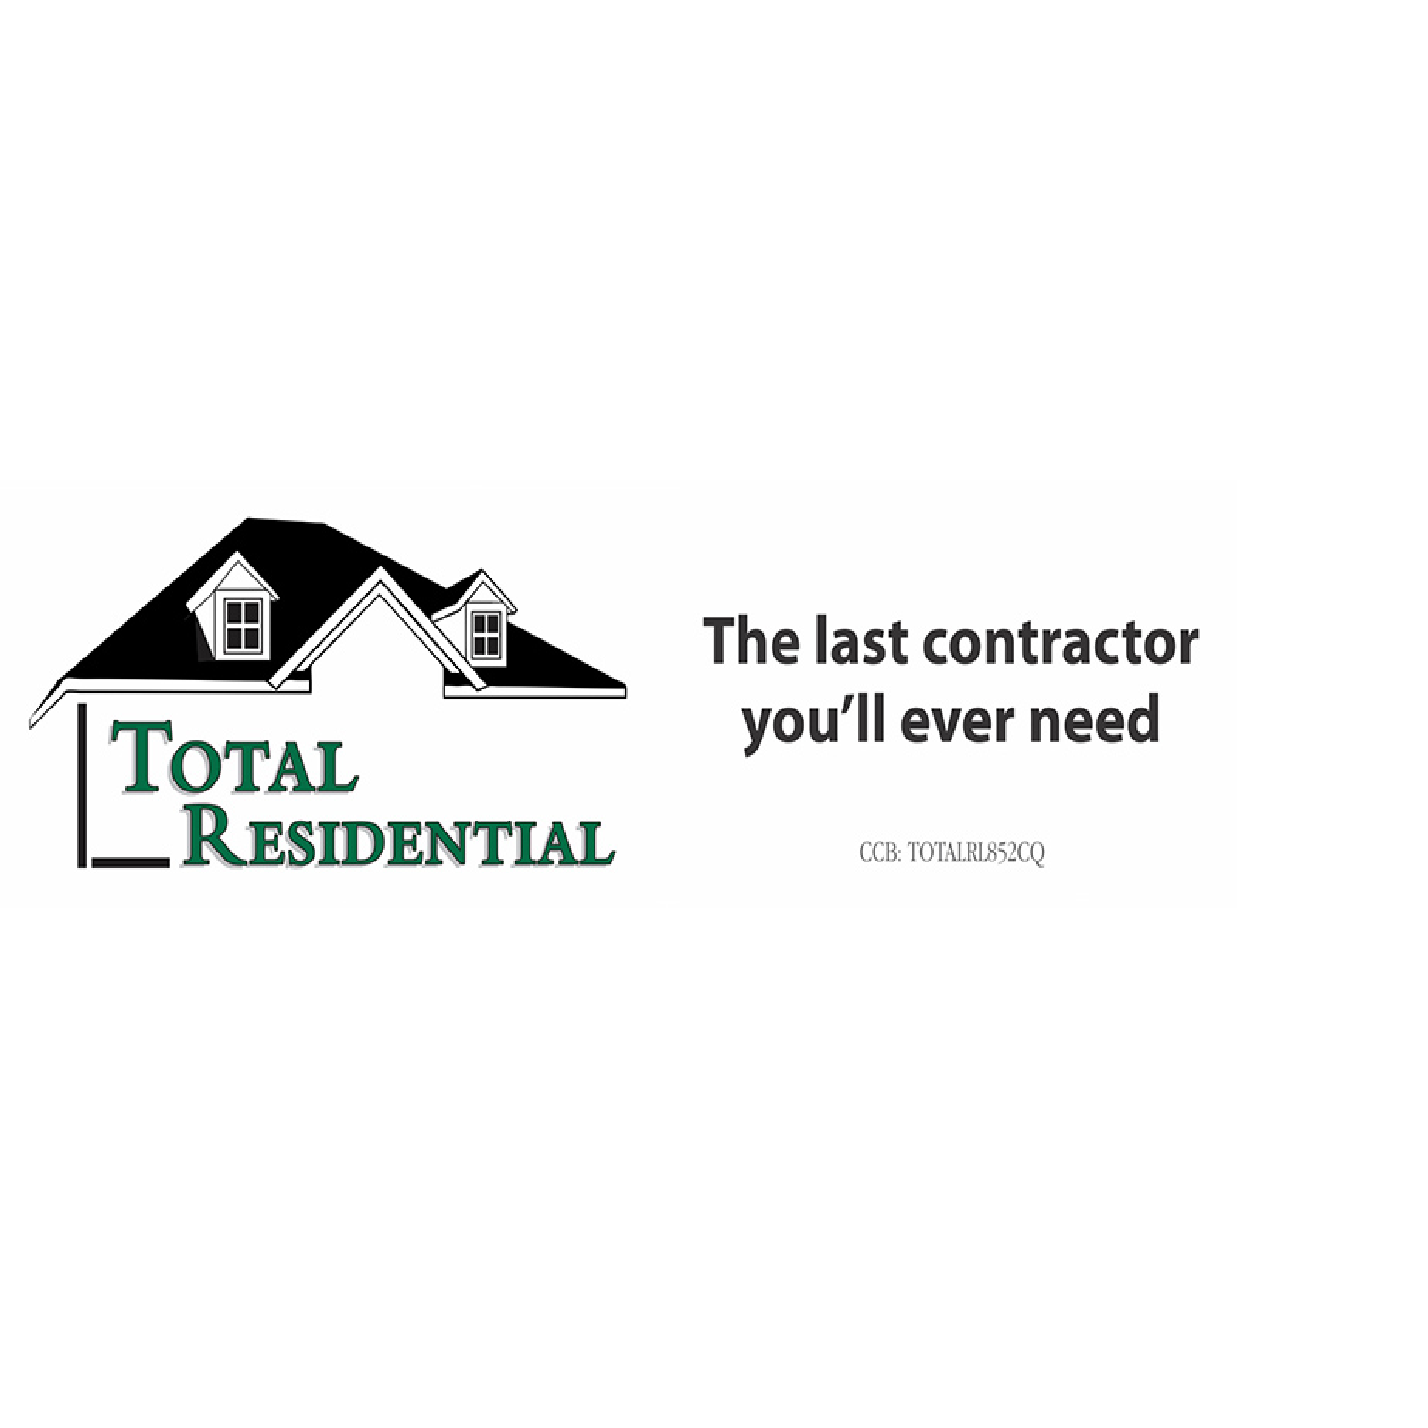 Total residential